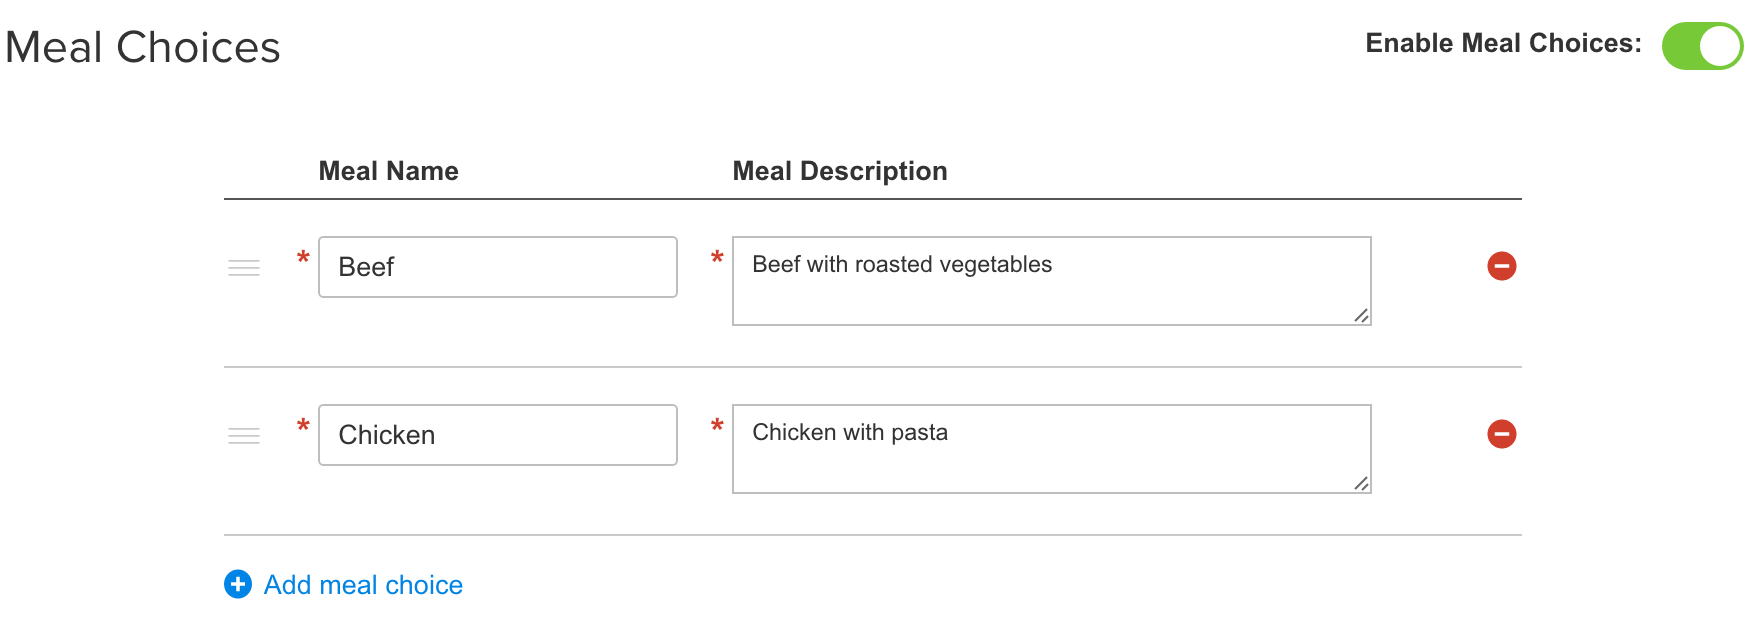 Enable Meal Choices